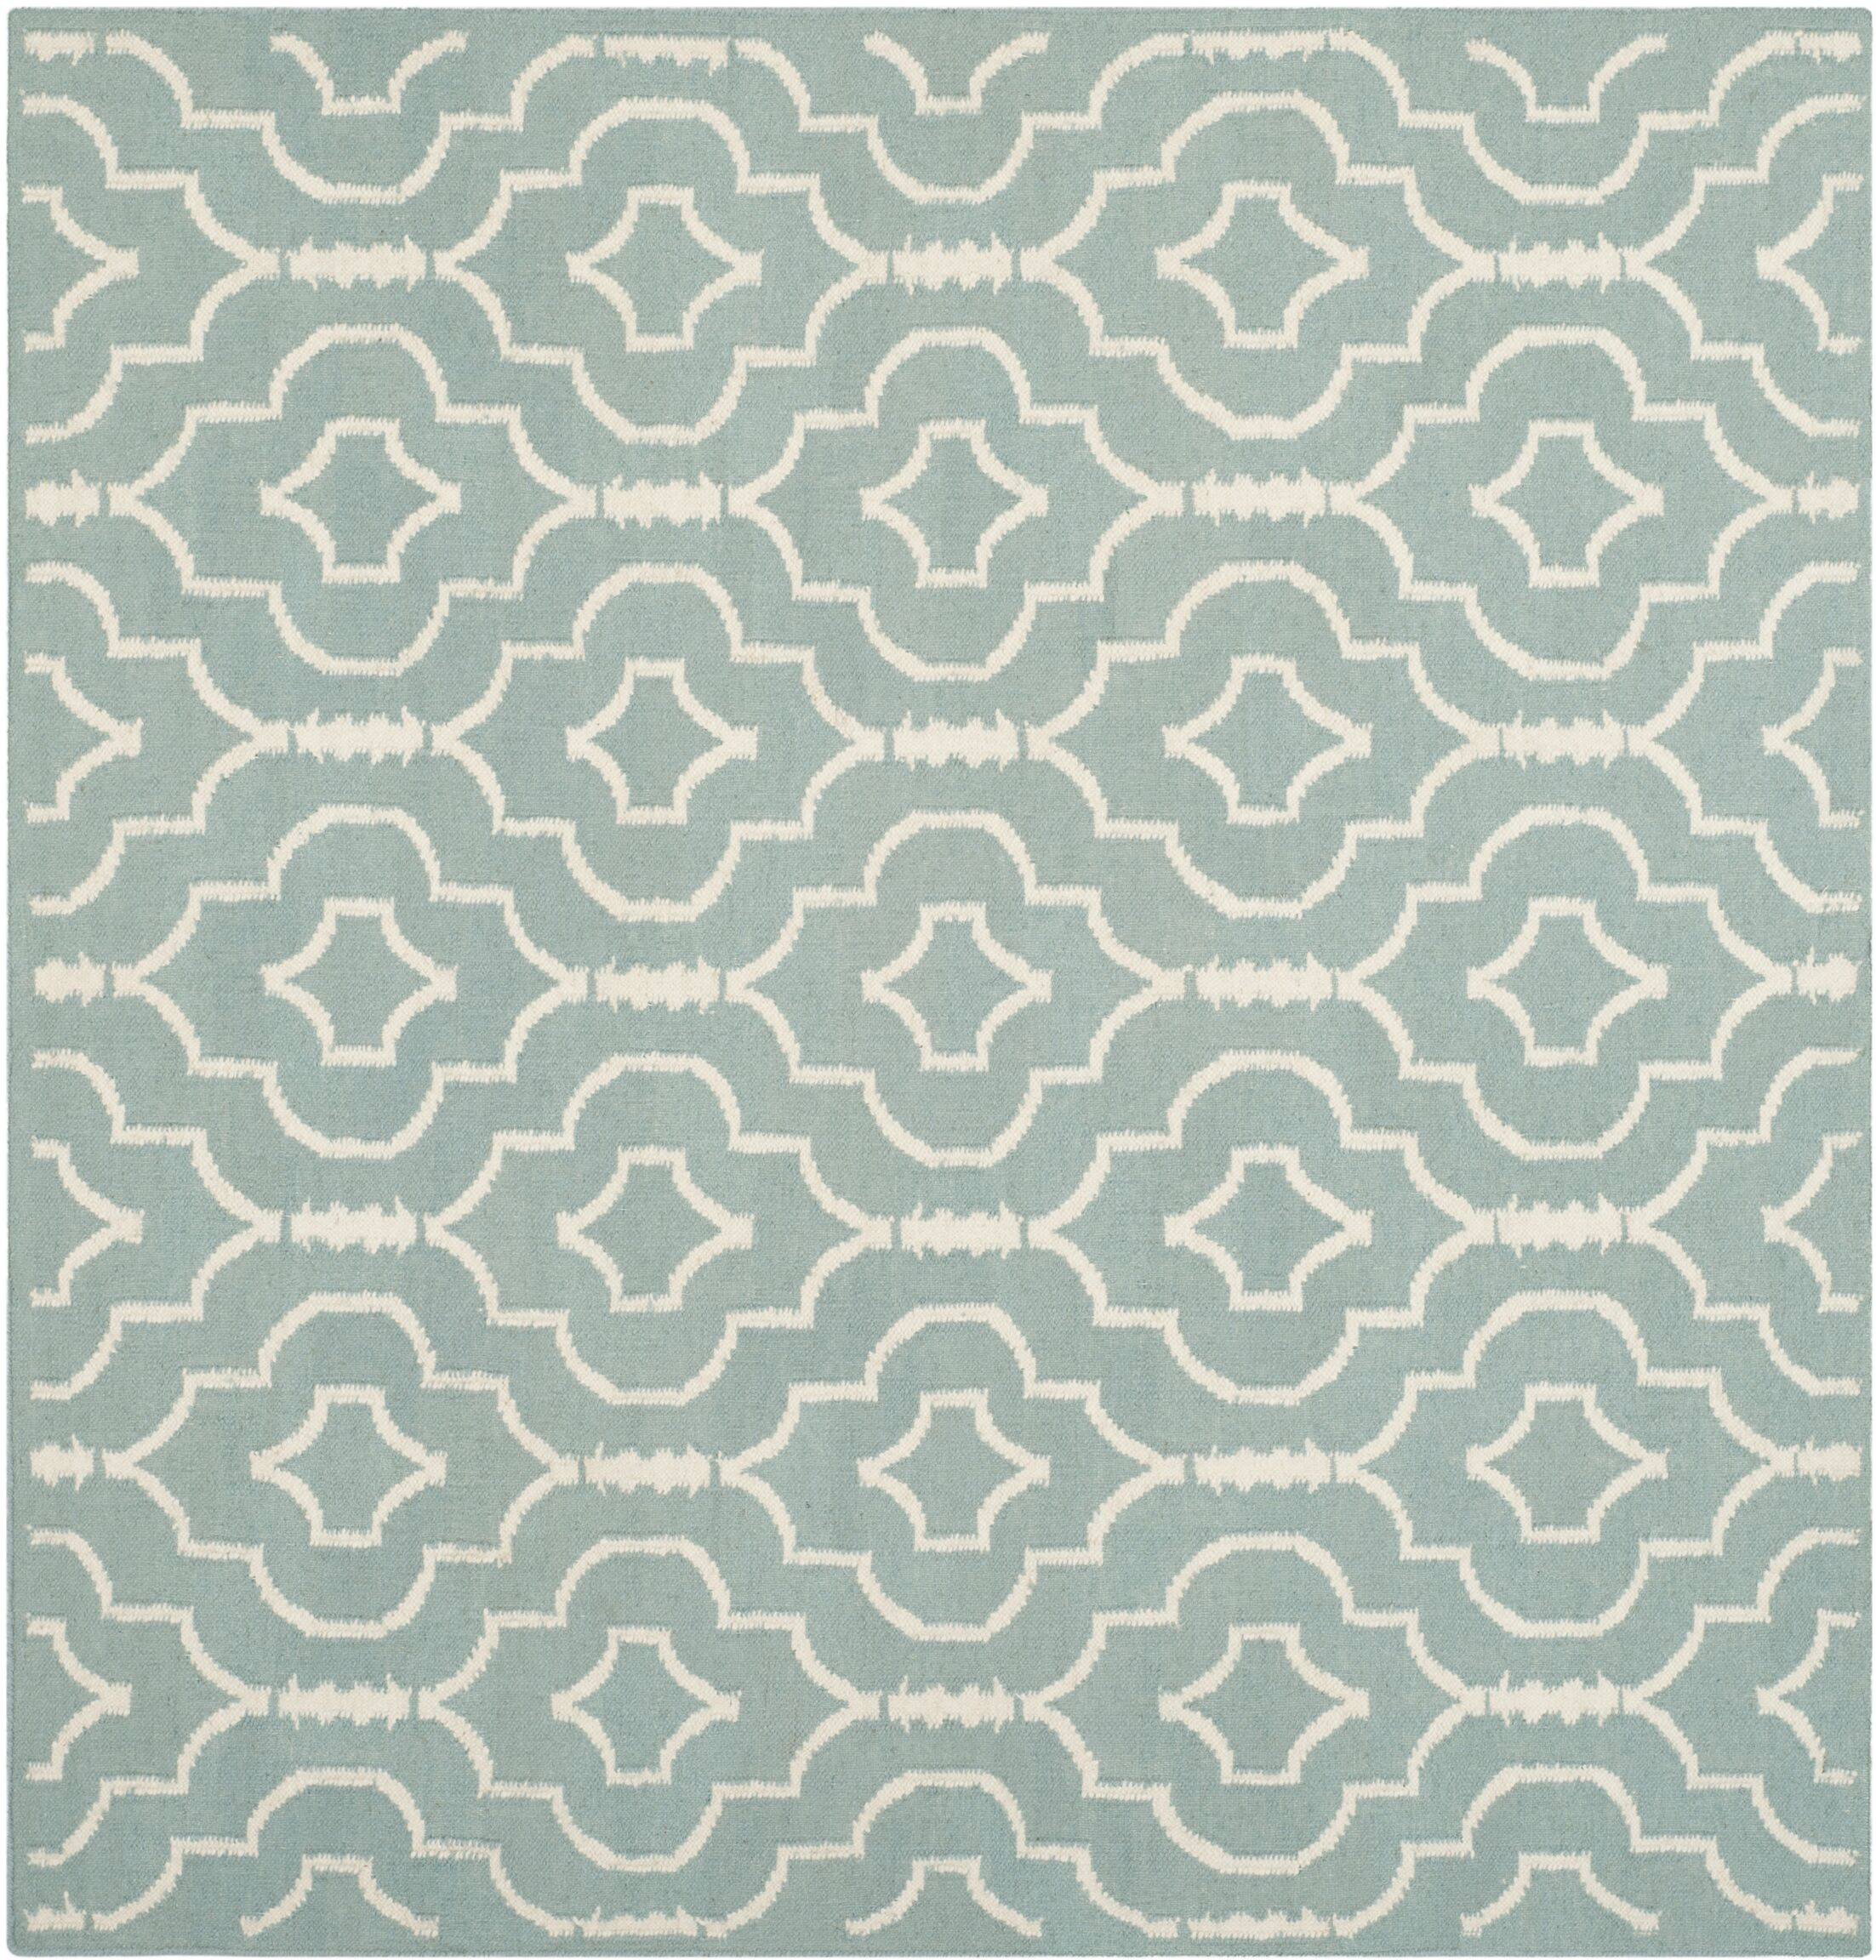 Masaryktown Hand-Woven Wool Light Blue/Ivory Area Rug Rug Size: Square 6'